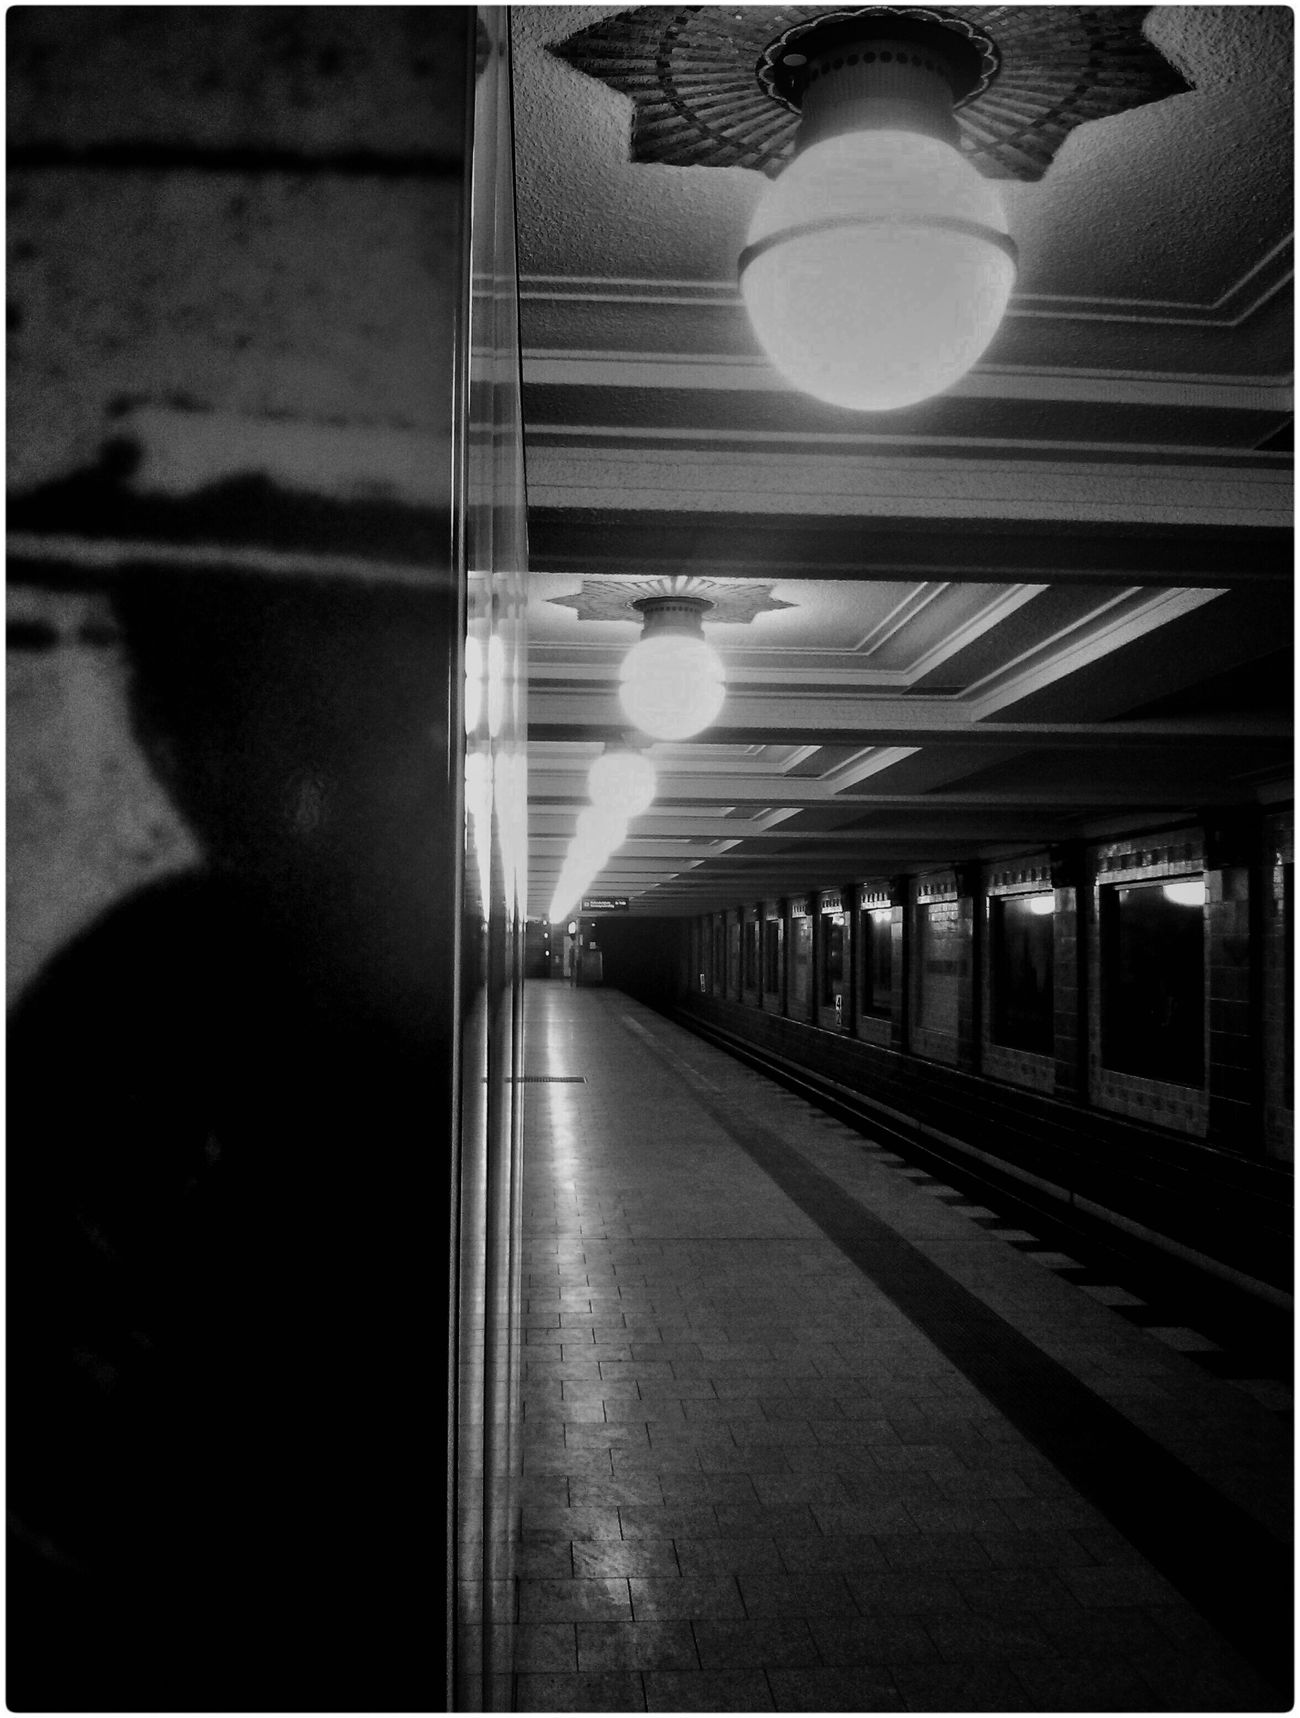 Tyranny is lurking around the corner. Black And White Perspective Tunnel Train Station Light At The End Of The Tunnel Figure Looming On The Way